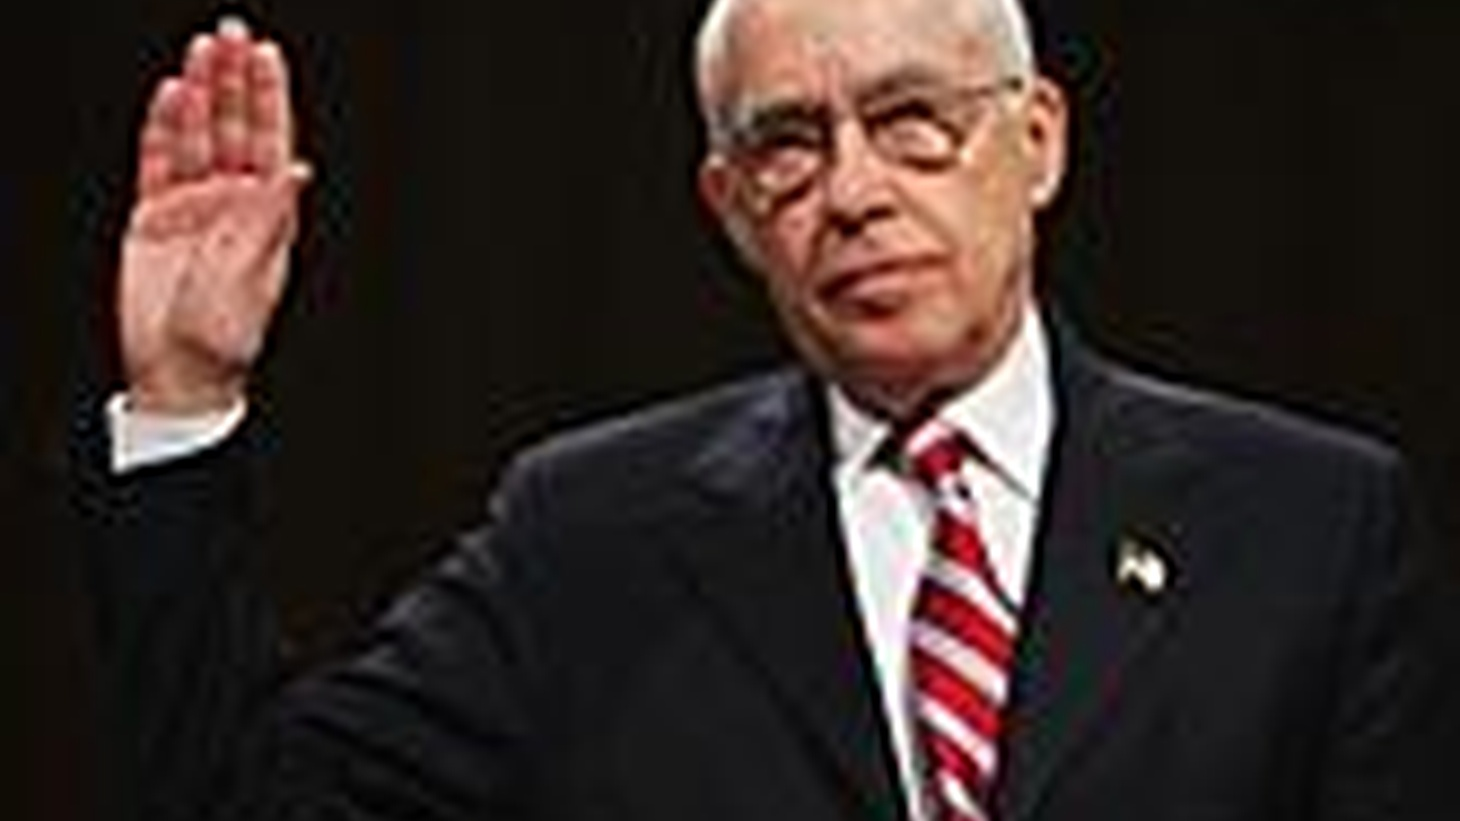 After a smooth day yesterday, former Judge Michael Mukasey got into trouble today on the issue of waterboarding. Is it torture? Is it Constitutional? Will it get in the way of Mukasey's confirmation as Attorney General? Also, the House fails to override the President's veto of SCHIP, and Benazir Bhutto returns to Pakistan.